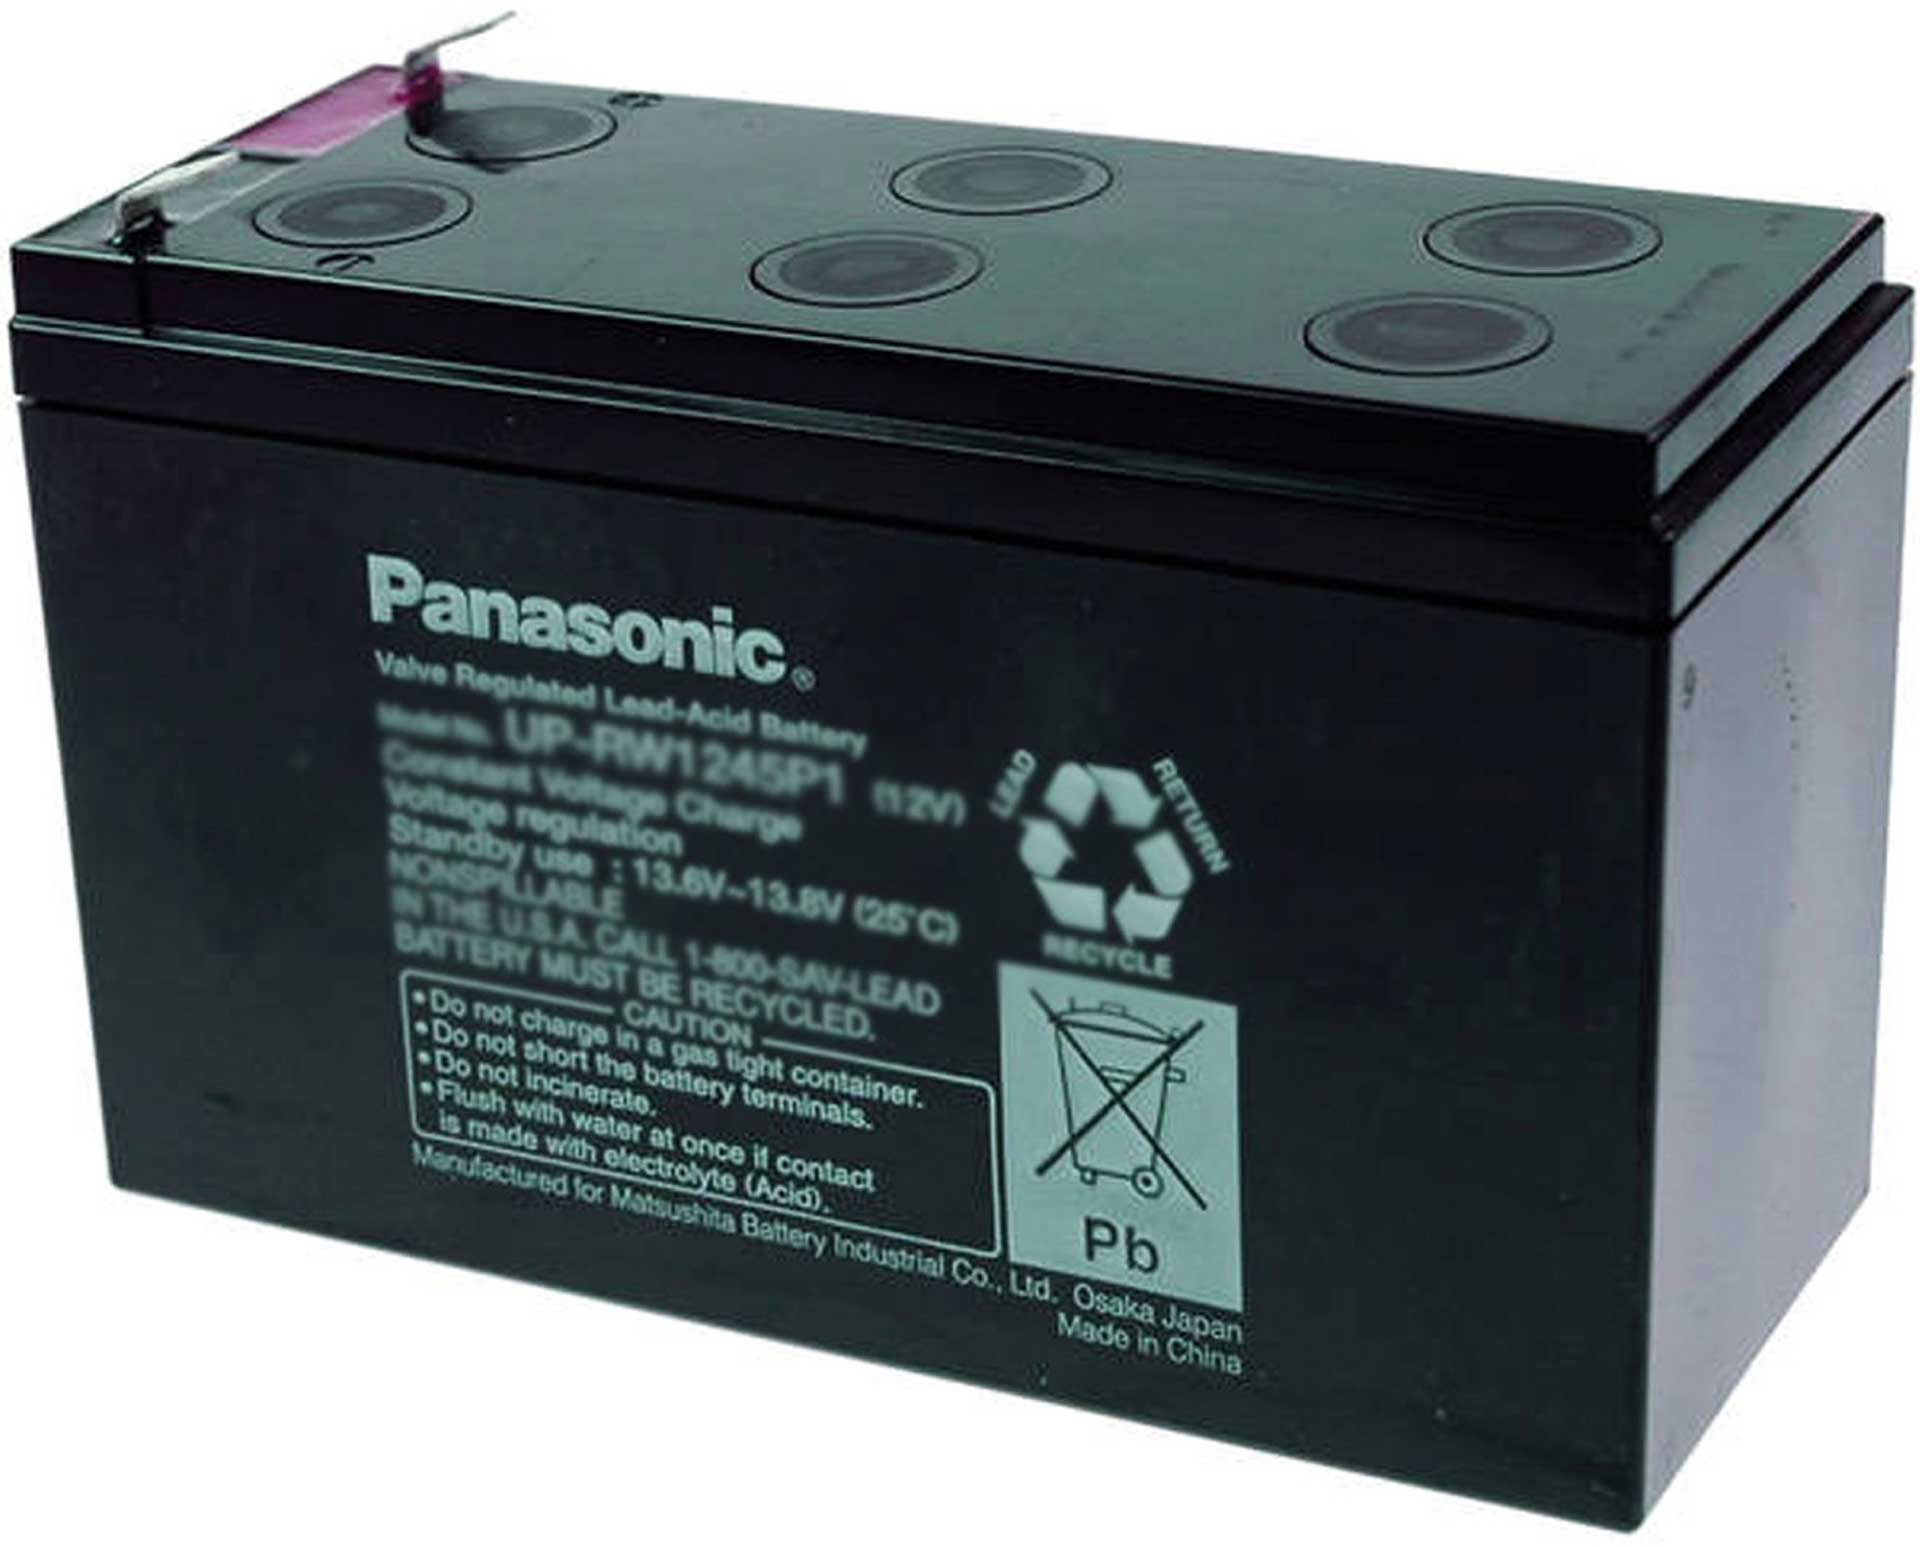 PANASONIC Lead acid battery UP-UW1245P1 PB 12V/7,8